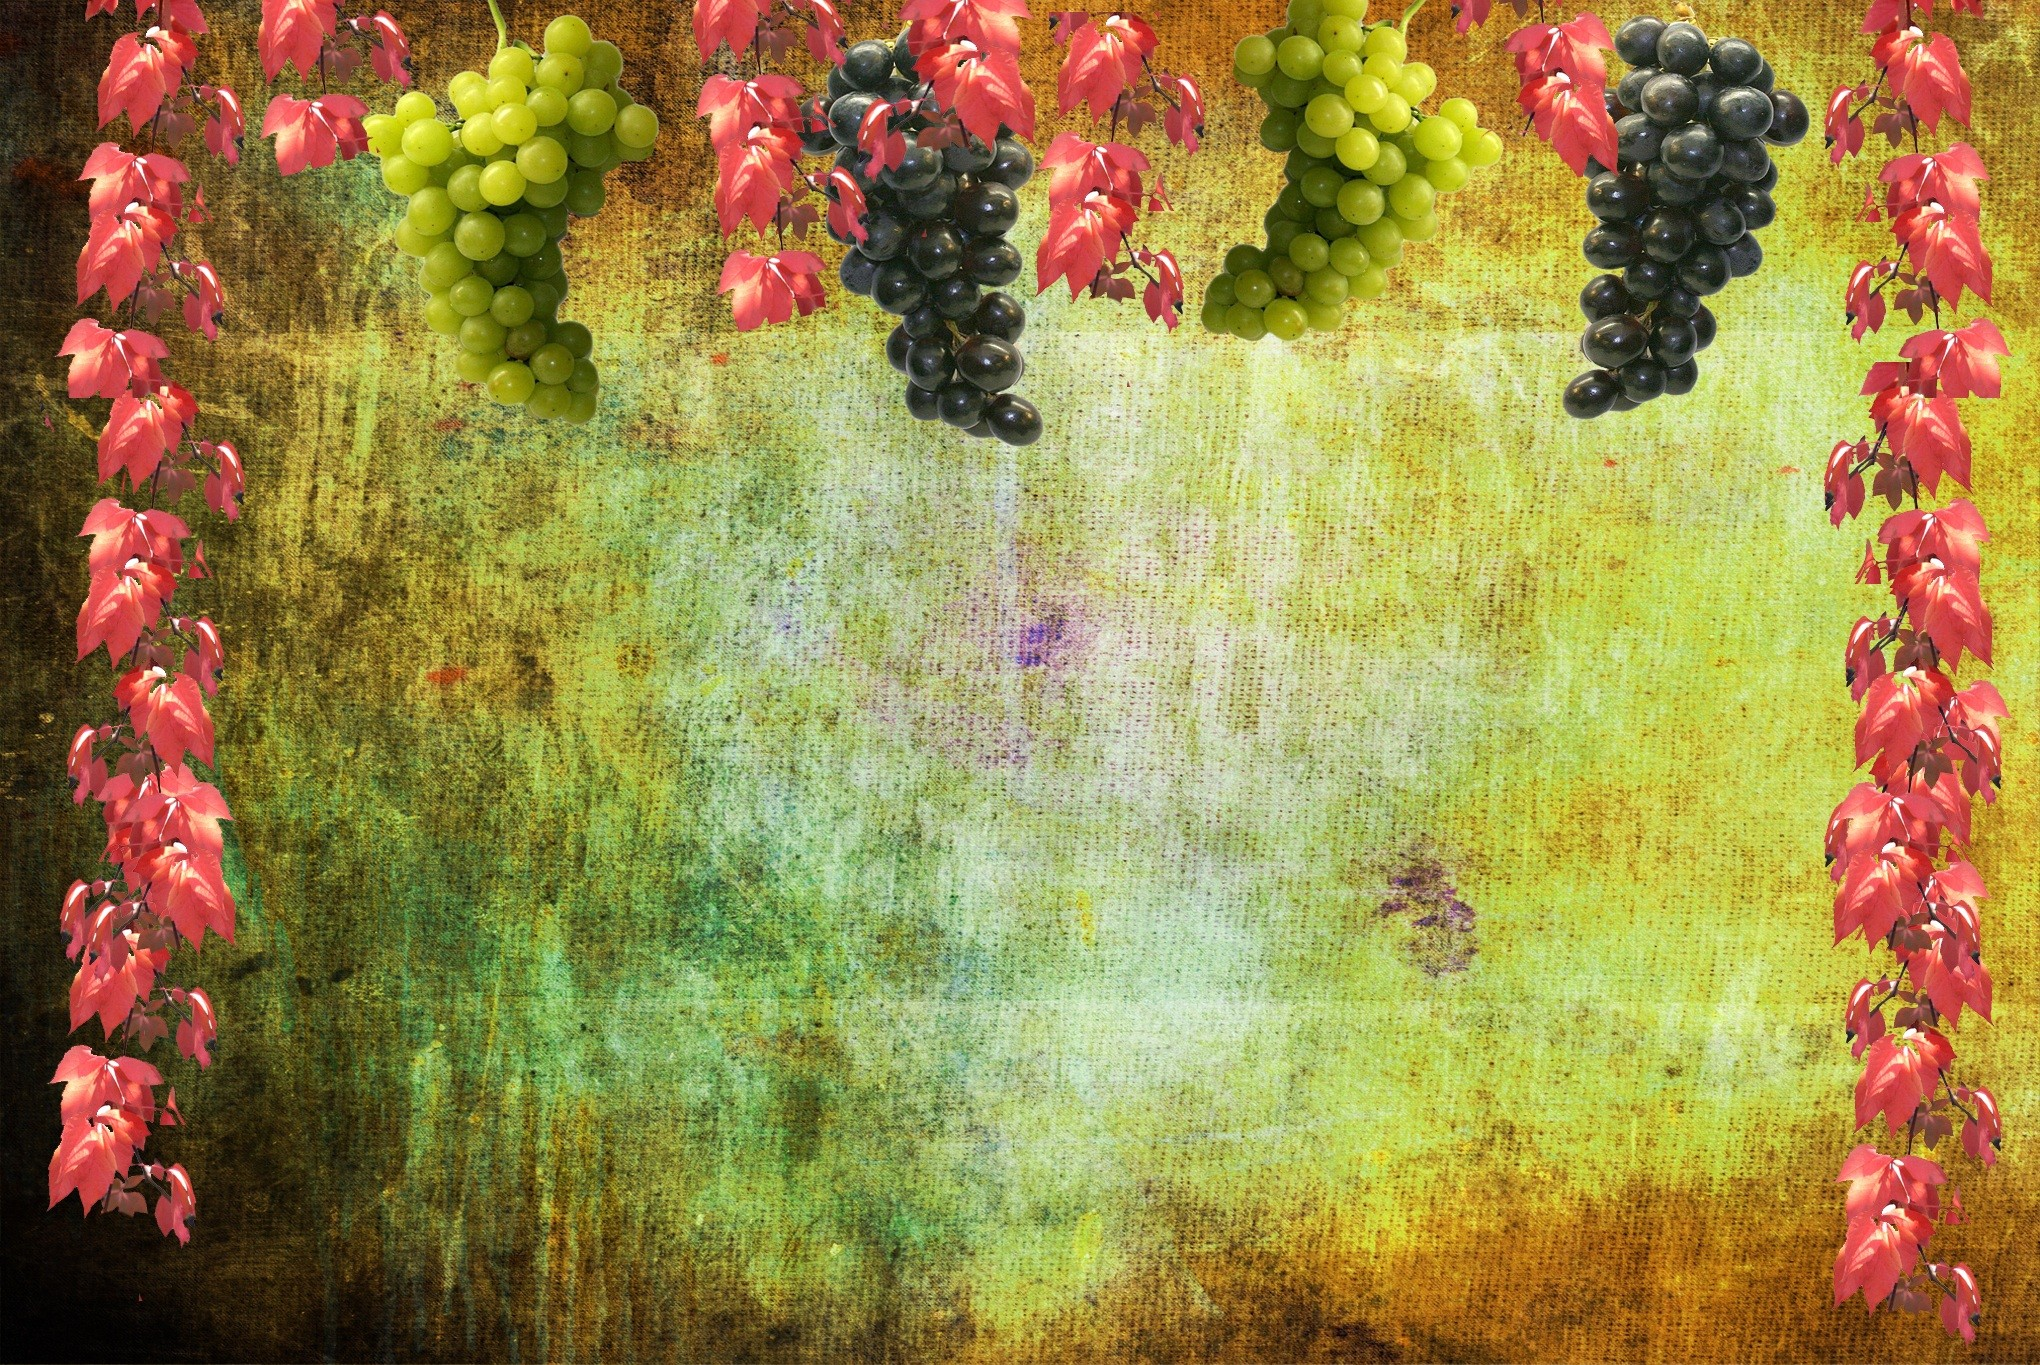 Free Images : nature, plant, flower, red, color, colorful, yellow, maple,  painting, emerge, leaves, background, grapes, october, floristry, of  course, fall …